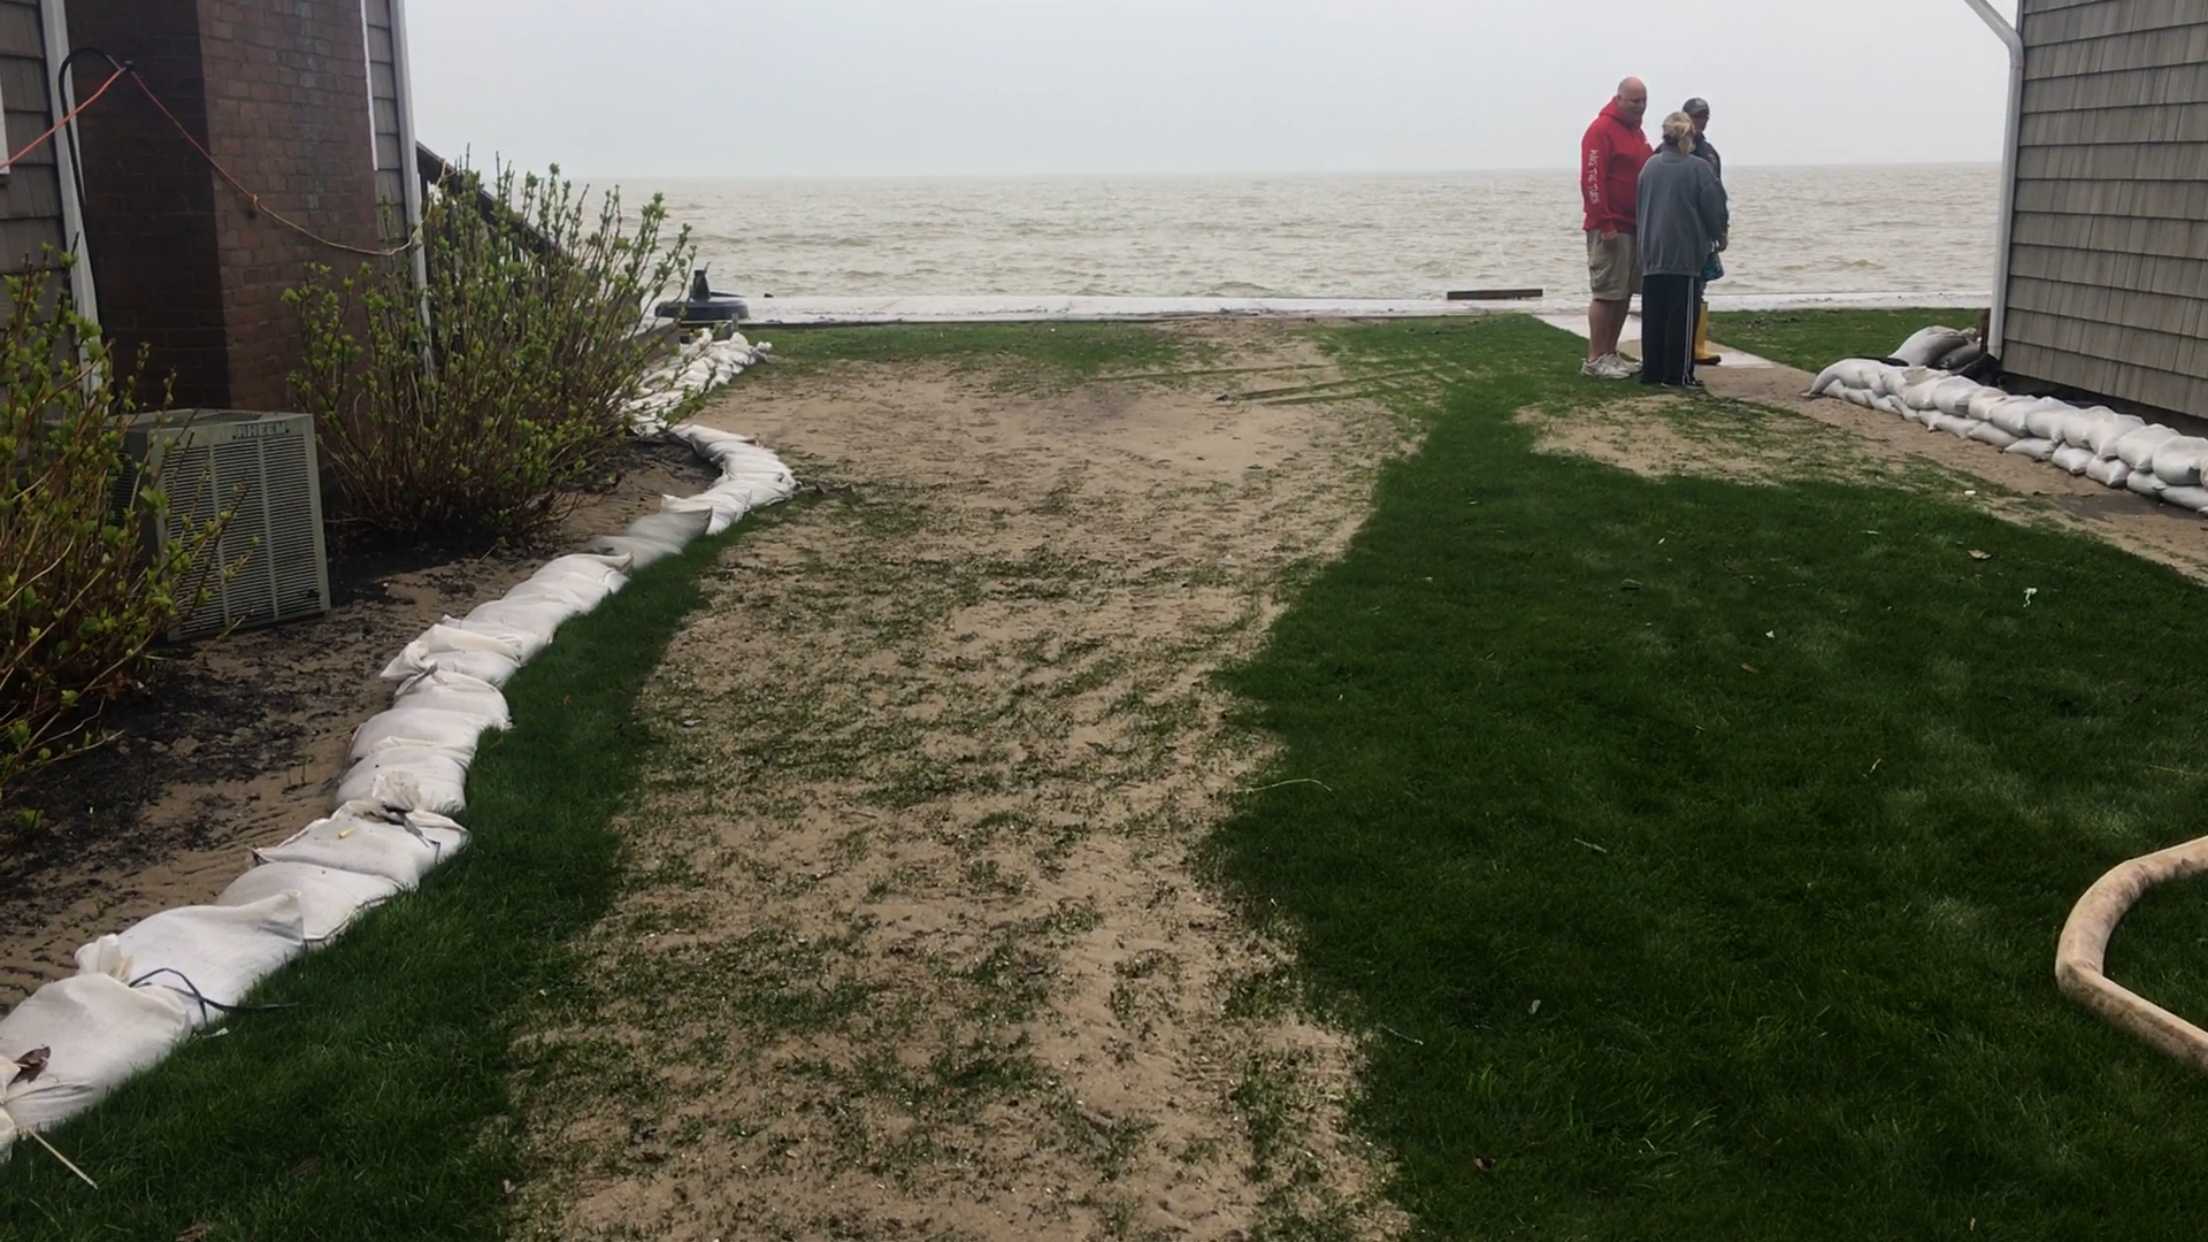 Caption: Residents assess the damage of flooding along the south shore of Lake Ontario., Credit: Veronica Volk